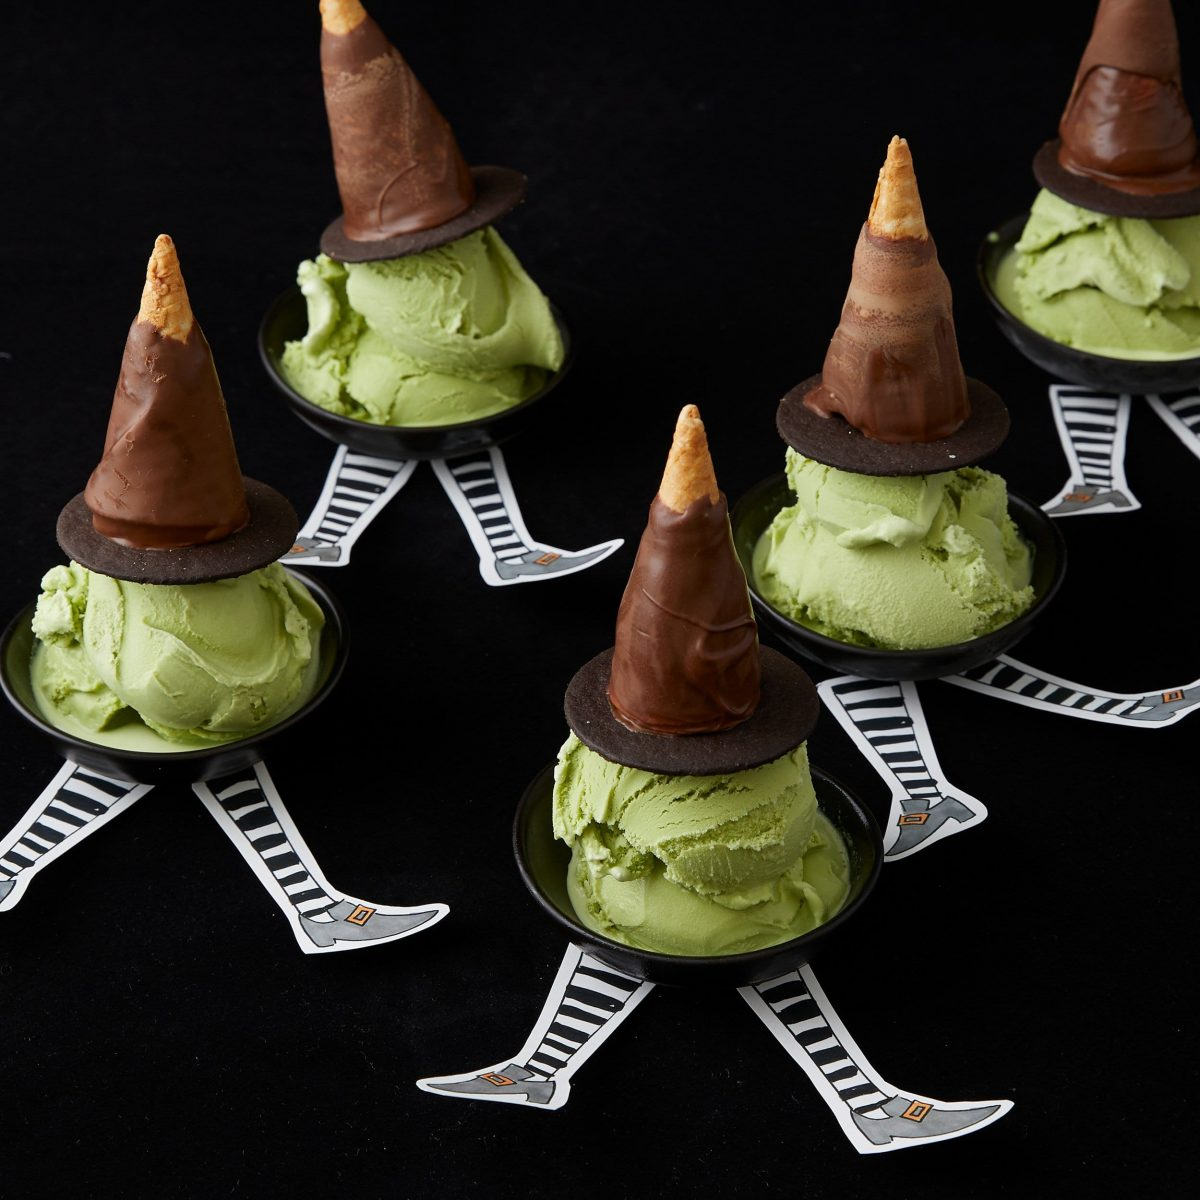 Darcy Miller, Halloween, Party, paper, chocolate, ice cream, candy corn, snack